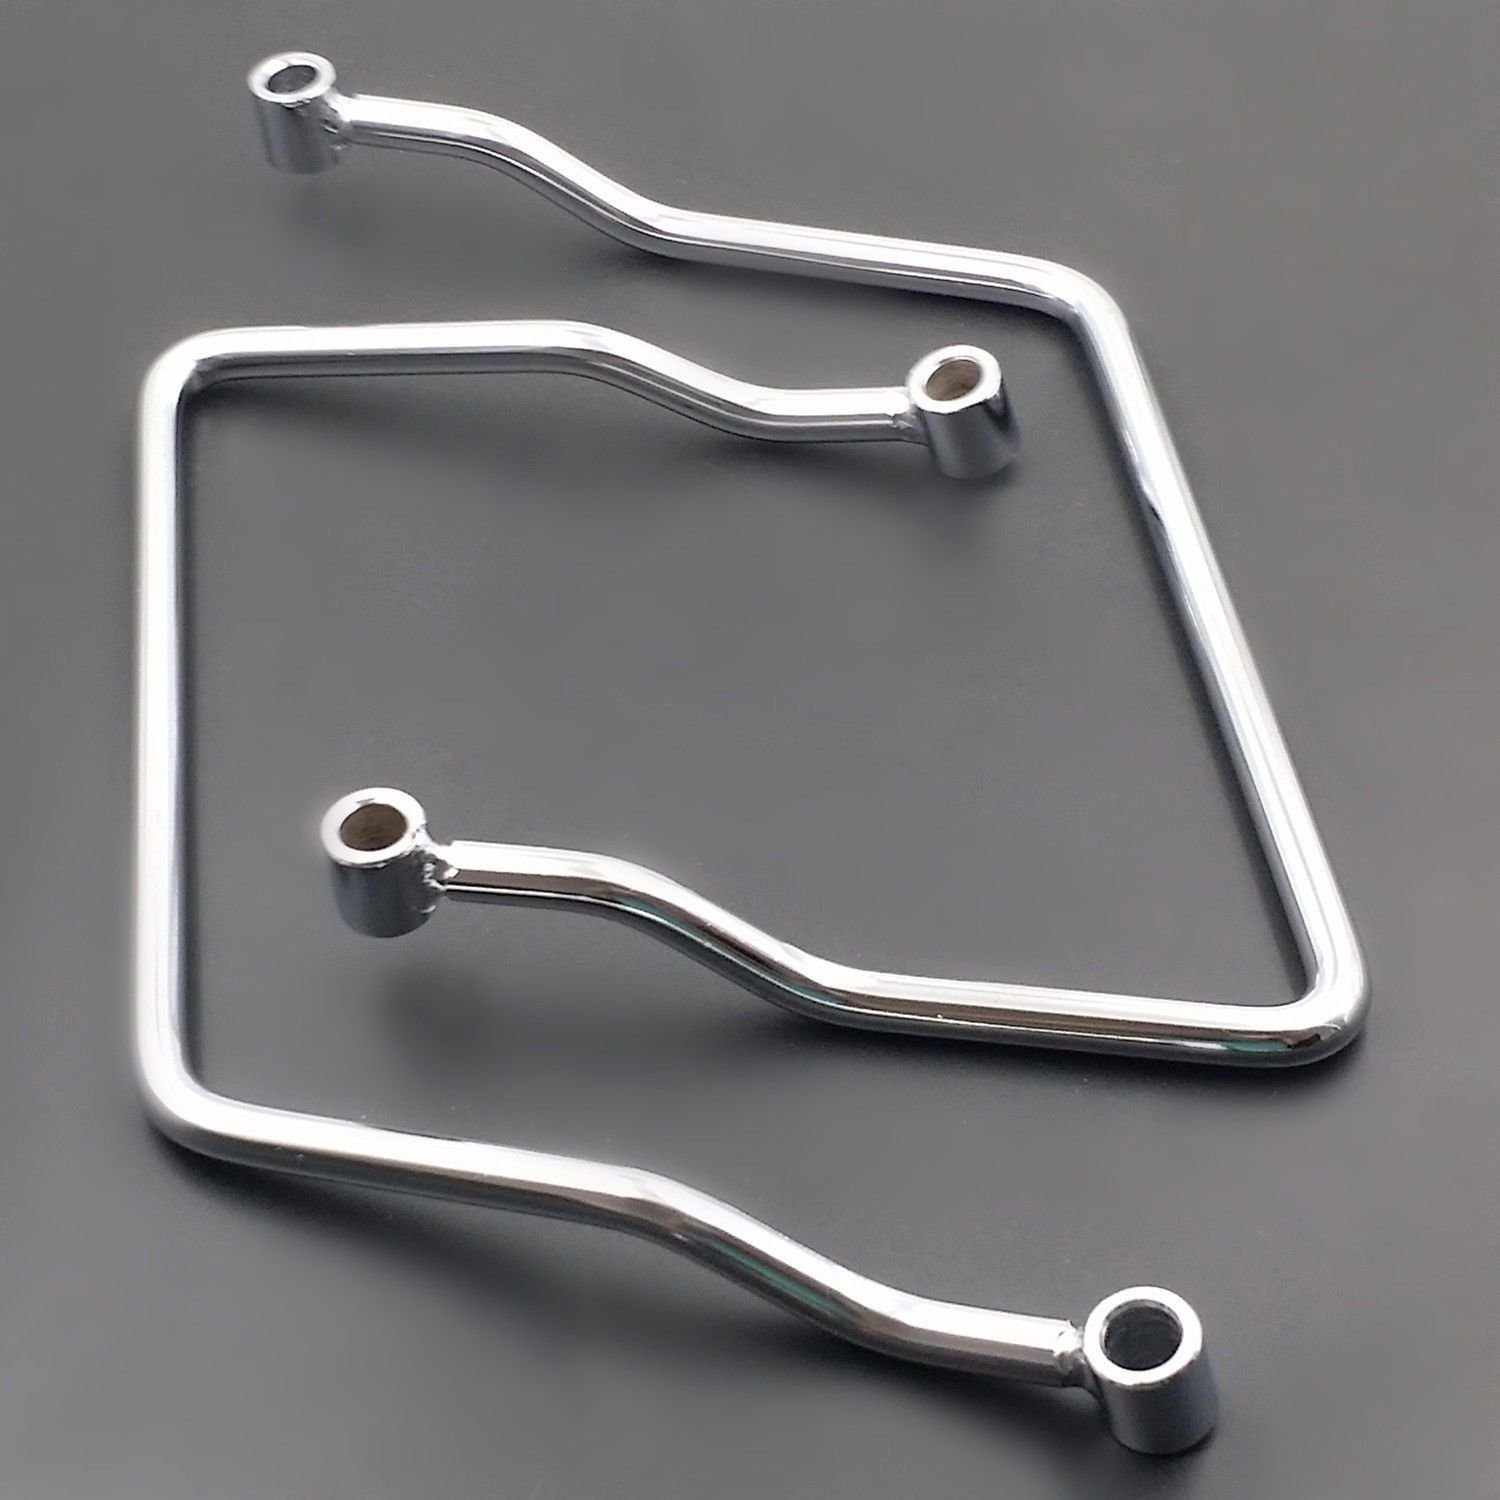 Moto Chrome 11/ cm borsa da sella barra di supporto staffa per Honda Shadow Ace VT1100/ Sabre 1100/ C2/ 1995/  / 1999